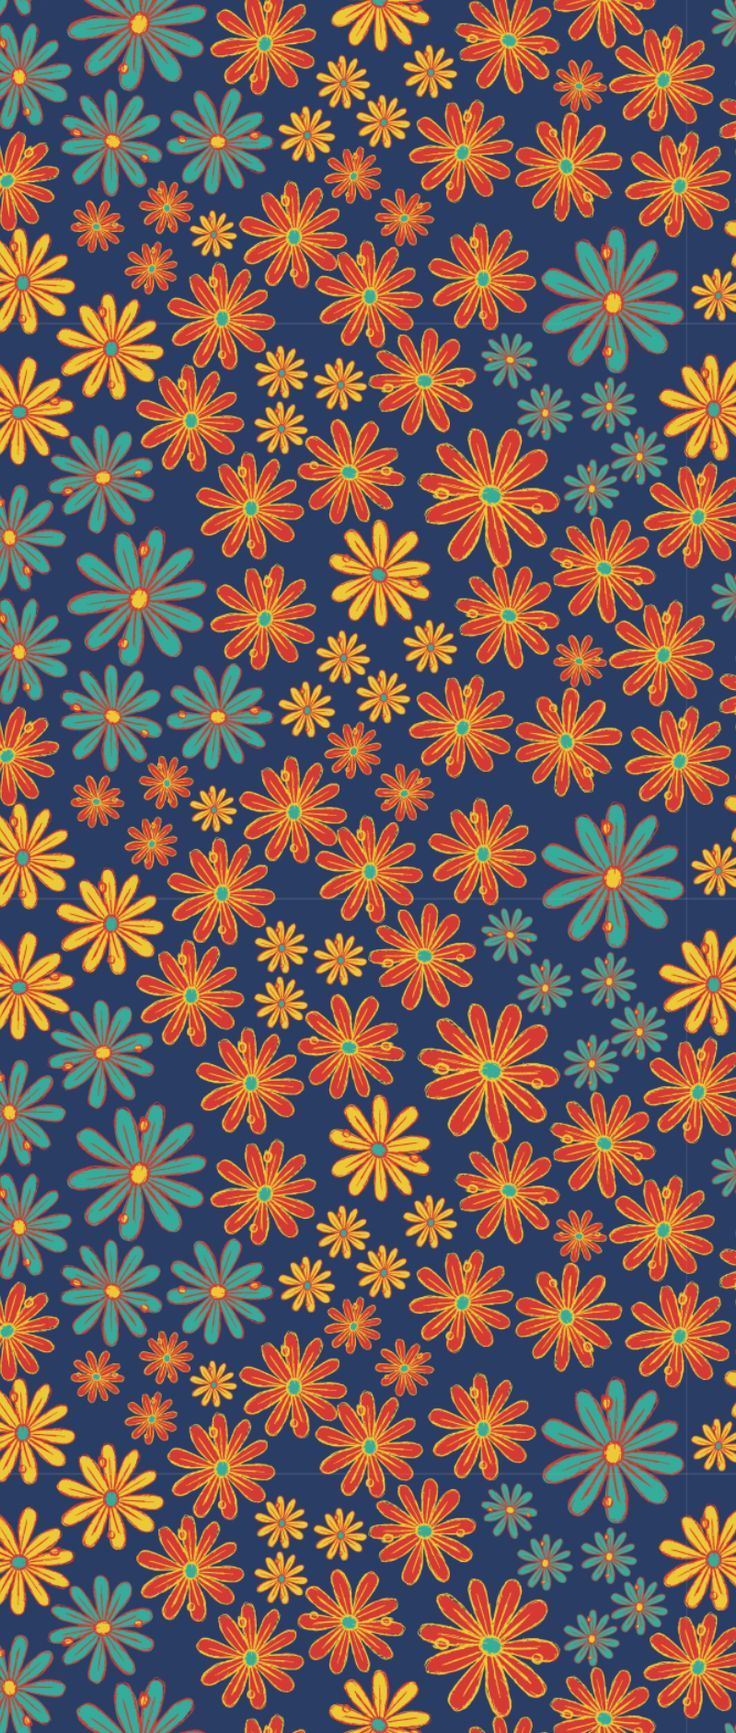 Illuminated Floral Pattern By Natalya Antuanetto Seamless Repeat